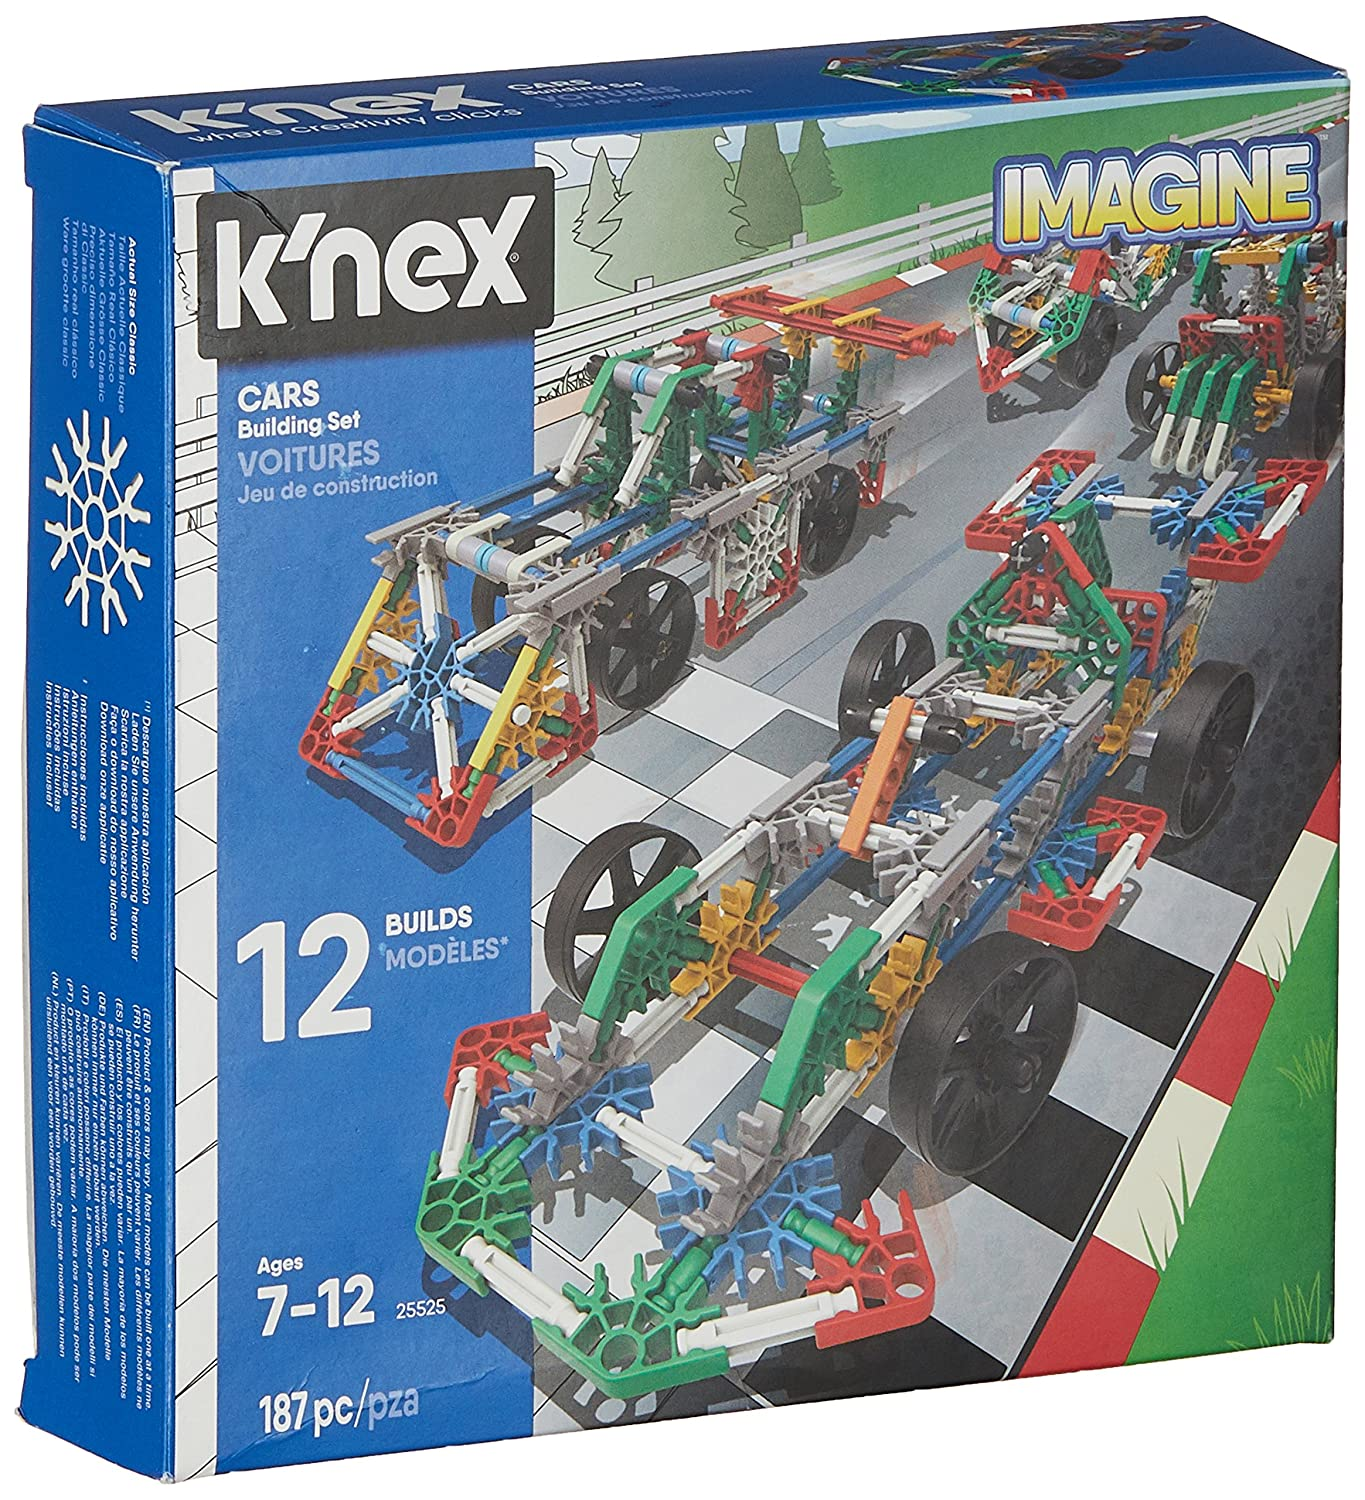 K'Nex 25525 Imagine 12 Model Cars Building Set, 186 Pieces, Ages 7+ Engineering Education Toy K'Nex